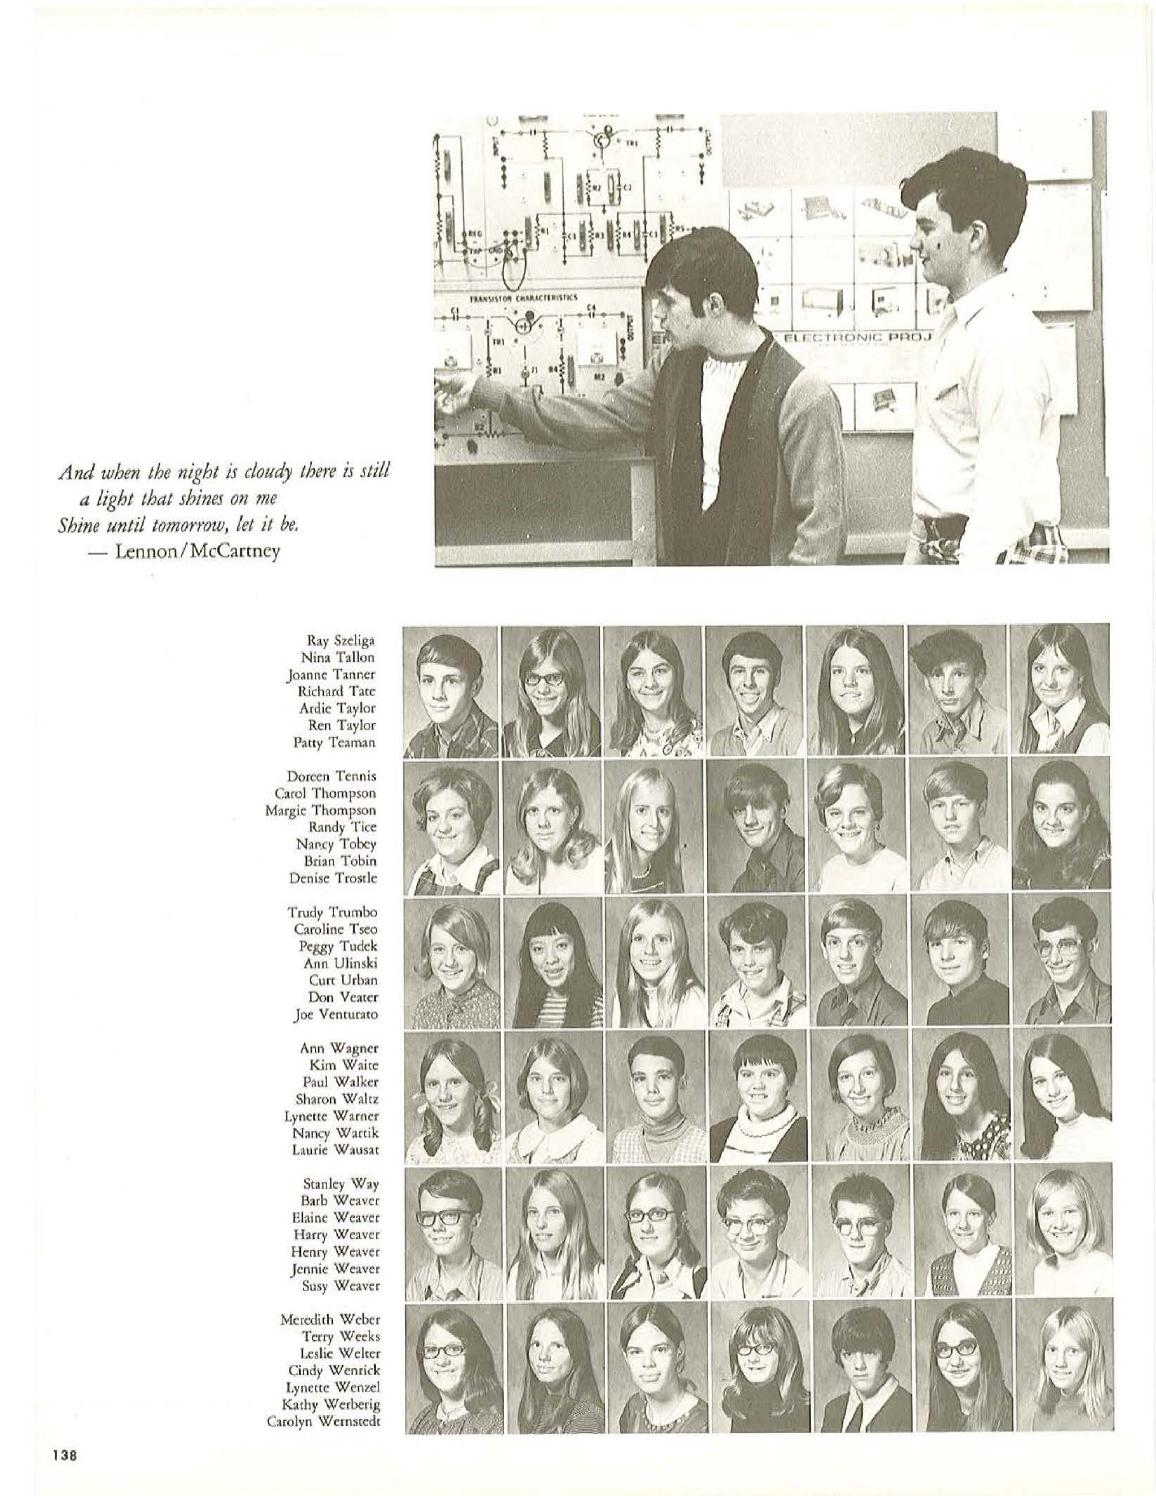 1971 Yearbook by Affinity Connection - issuu